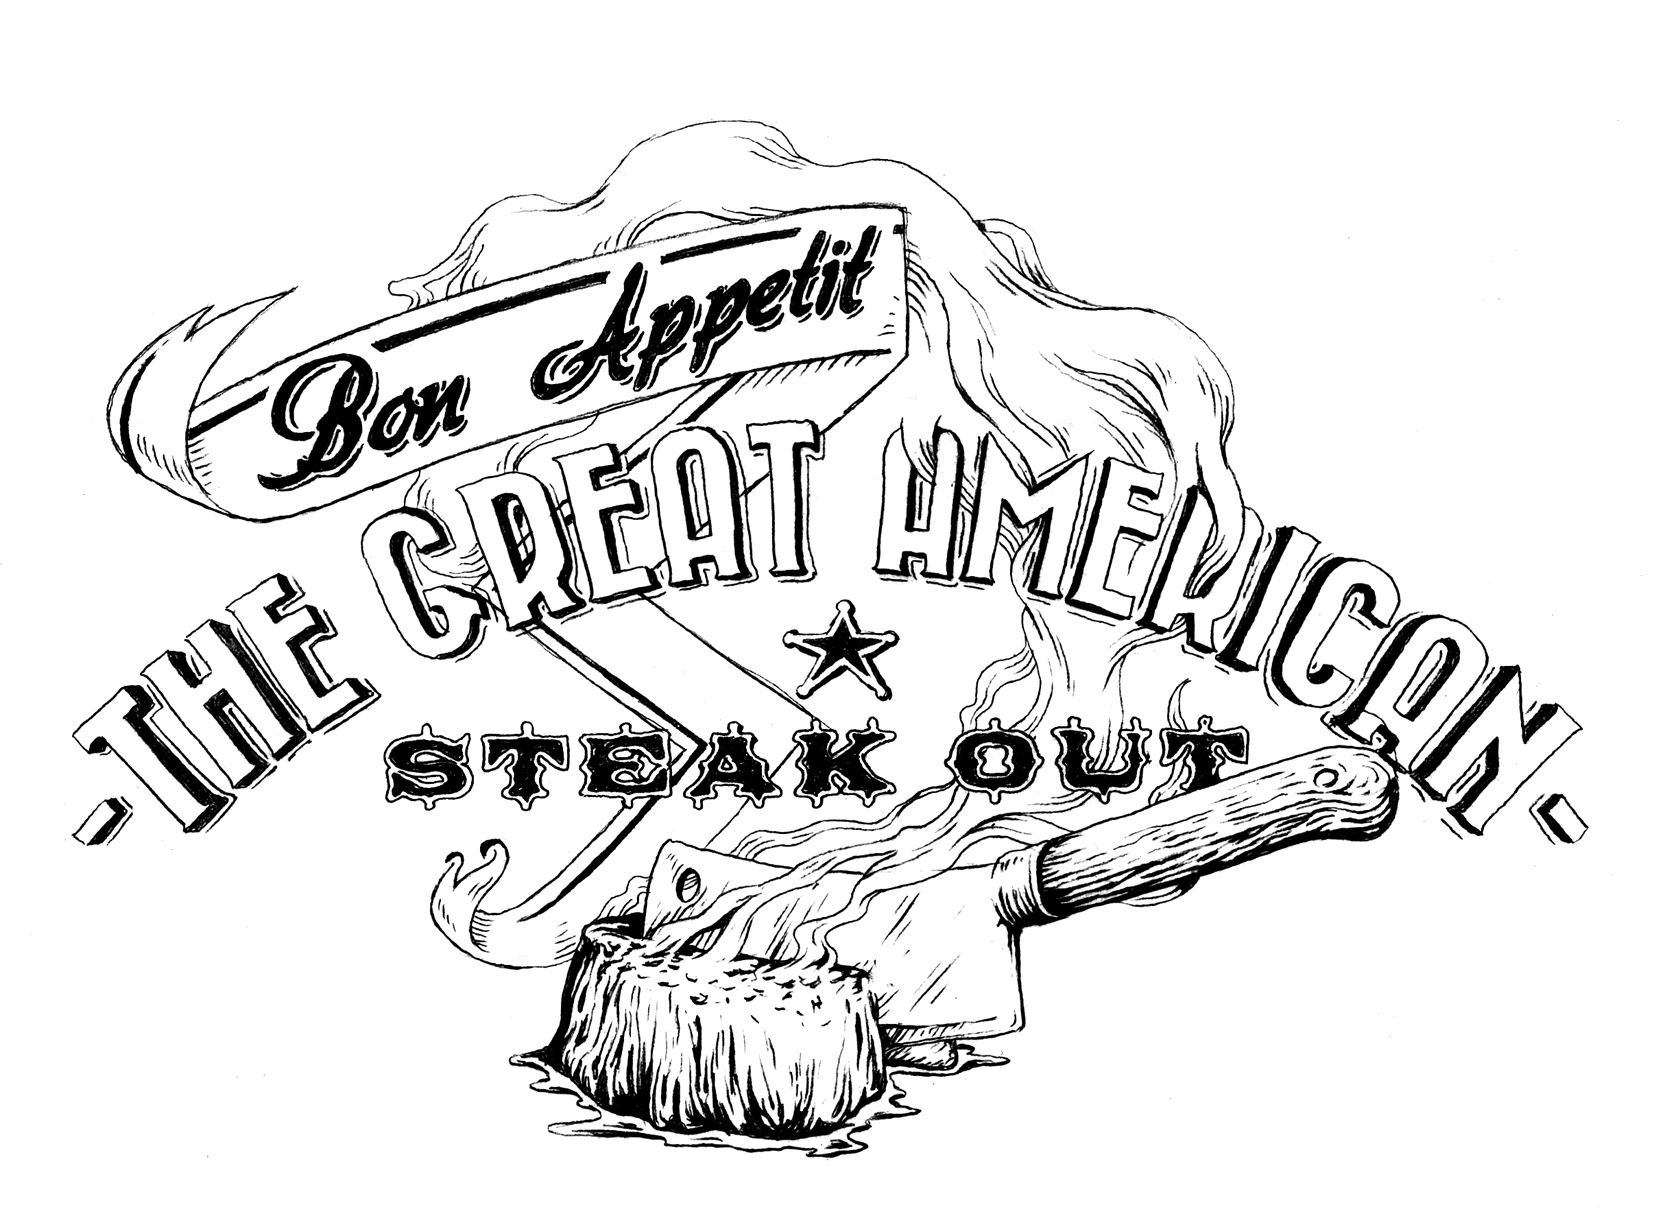 The Great American Steak Out